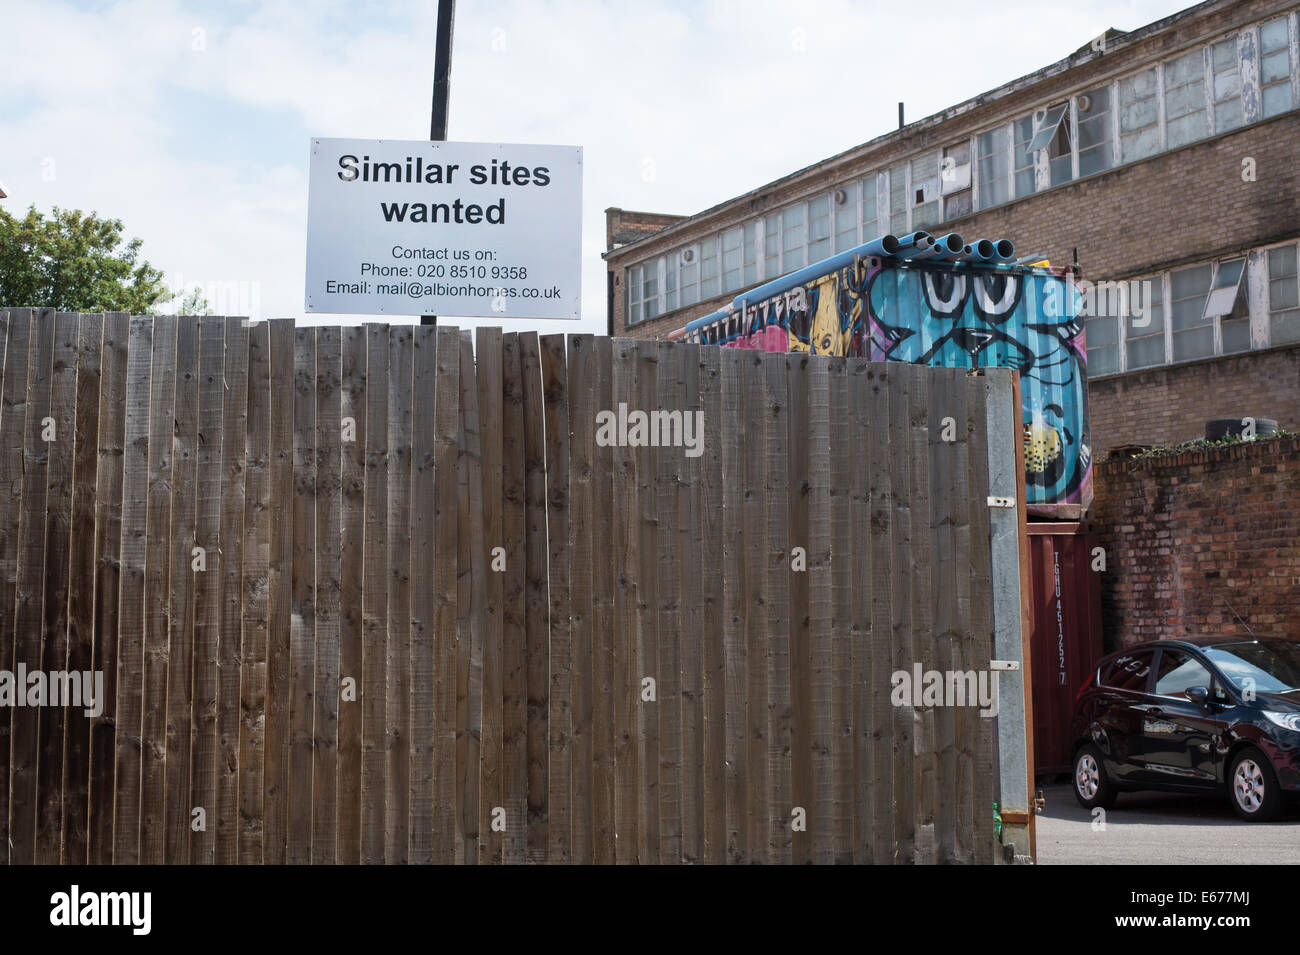 London Fields. Sign from property company saying 'Similar sites wanted'. - Stock Image